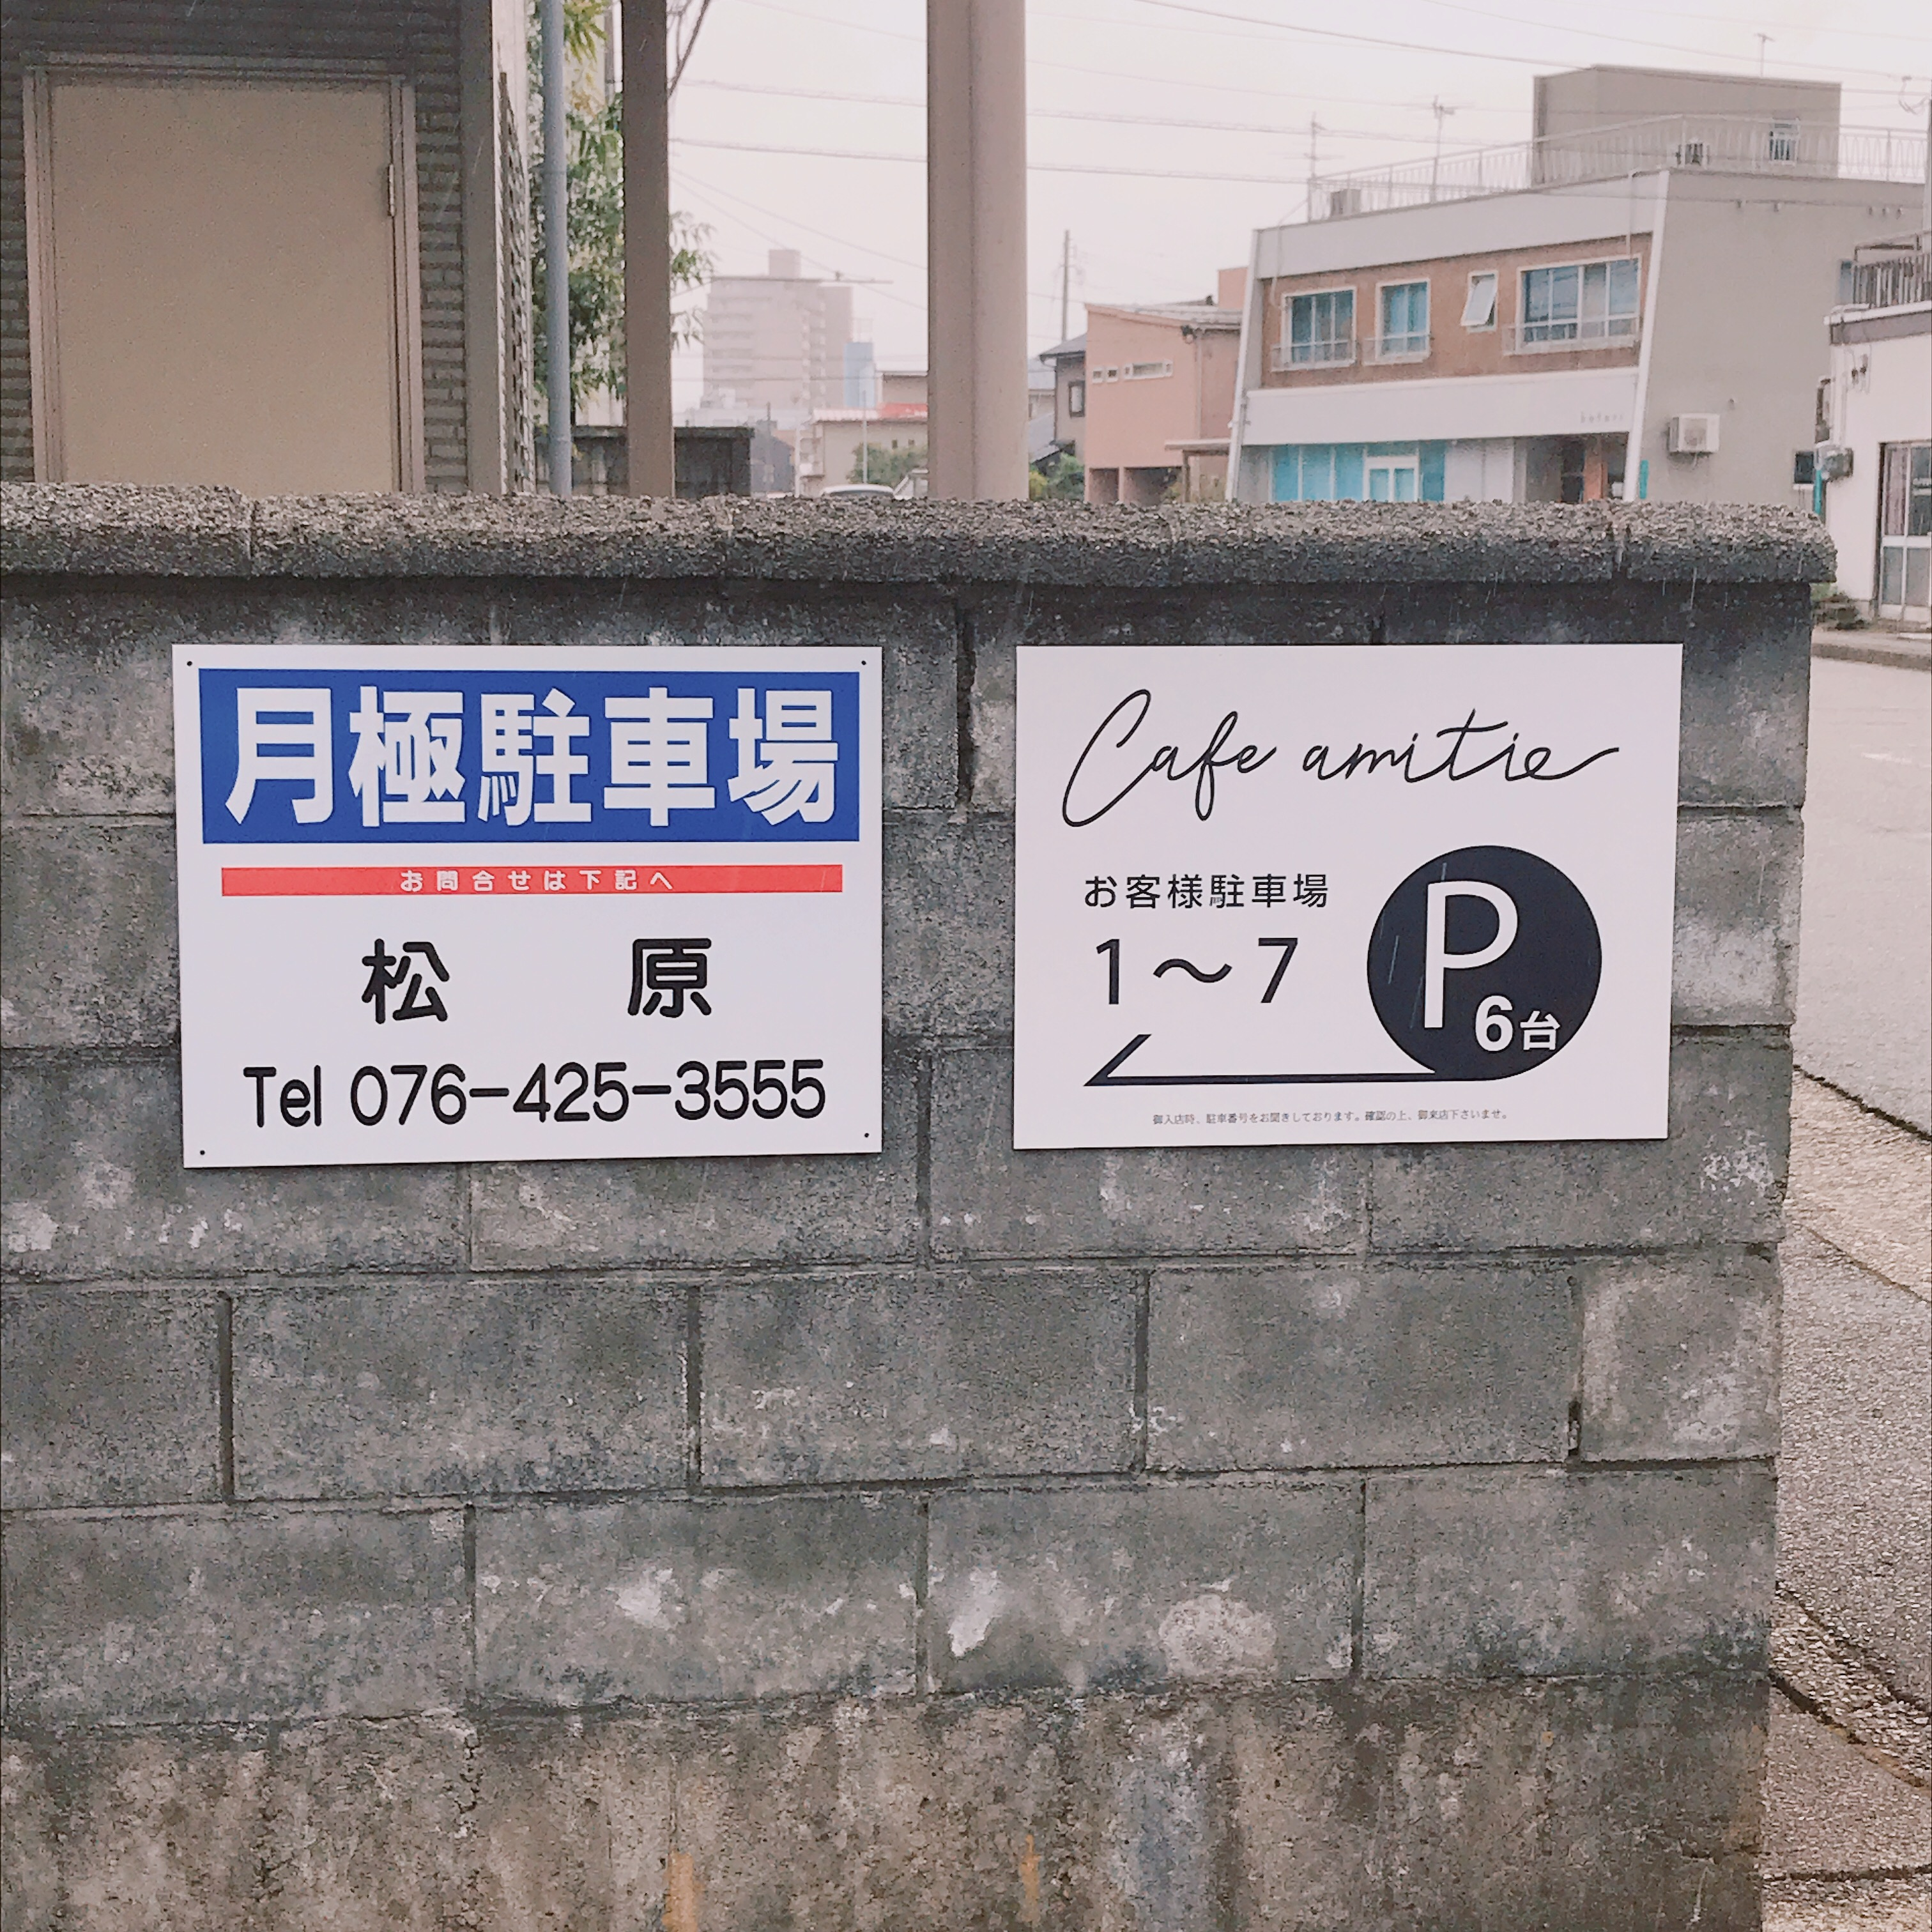 cafe amitie駐車場2